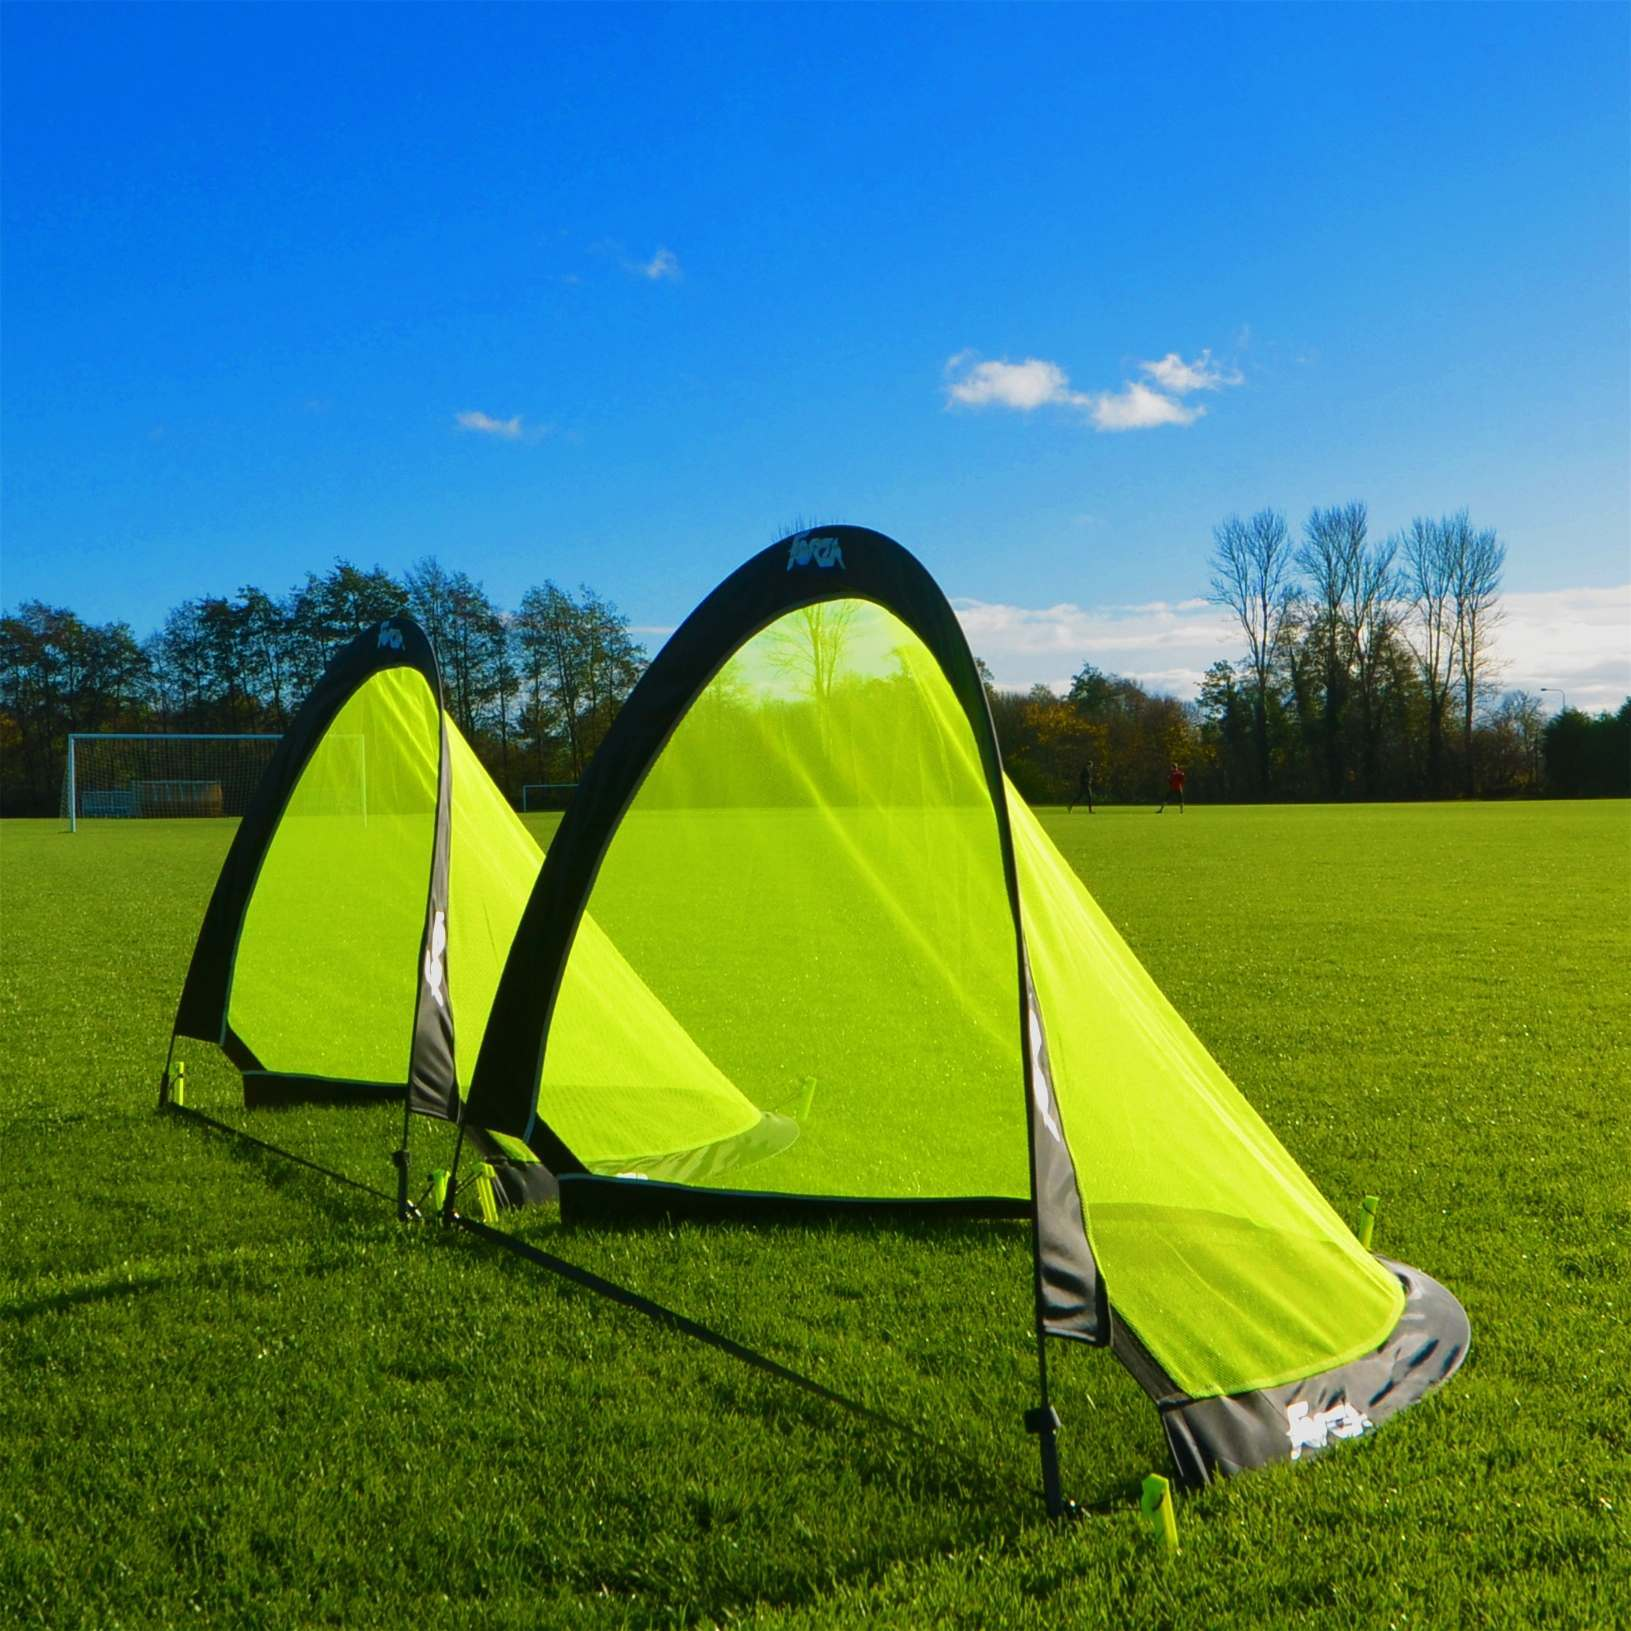 4ft FORZA FLASH Pop-Up Football Goals [Pair]